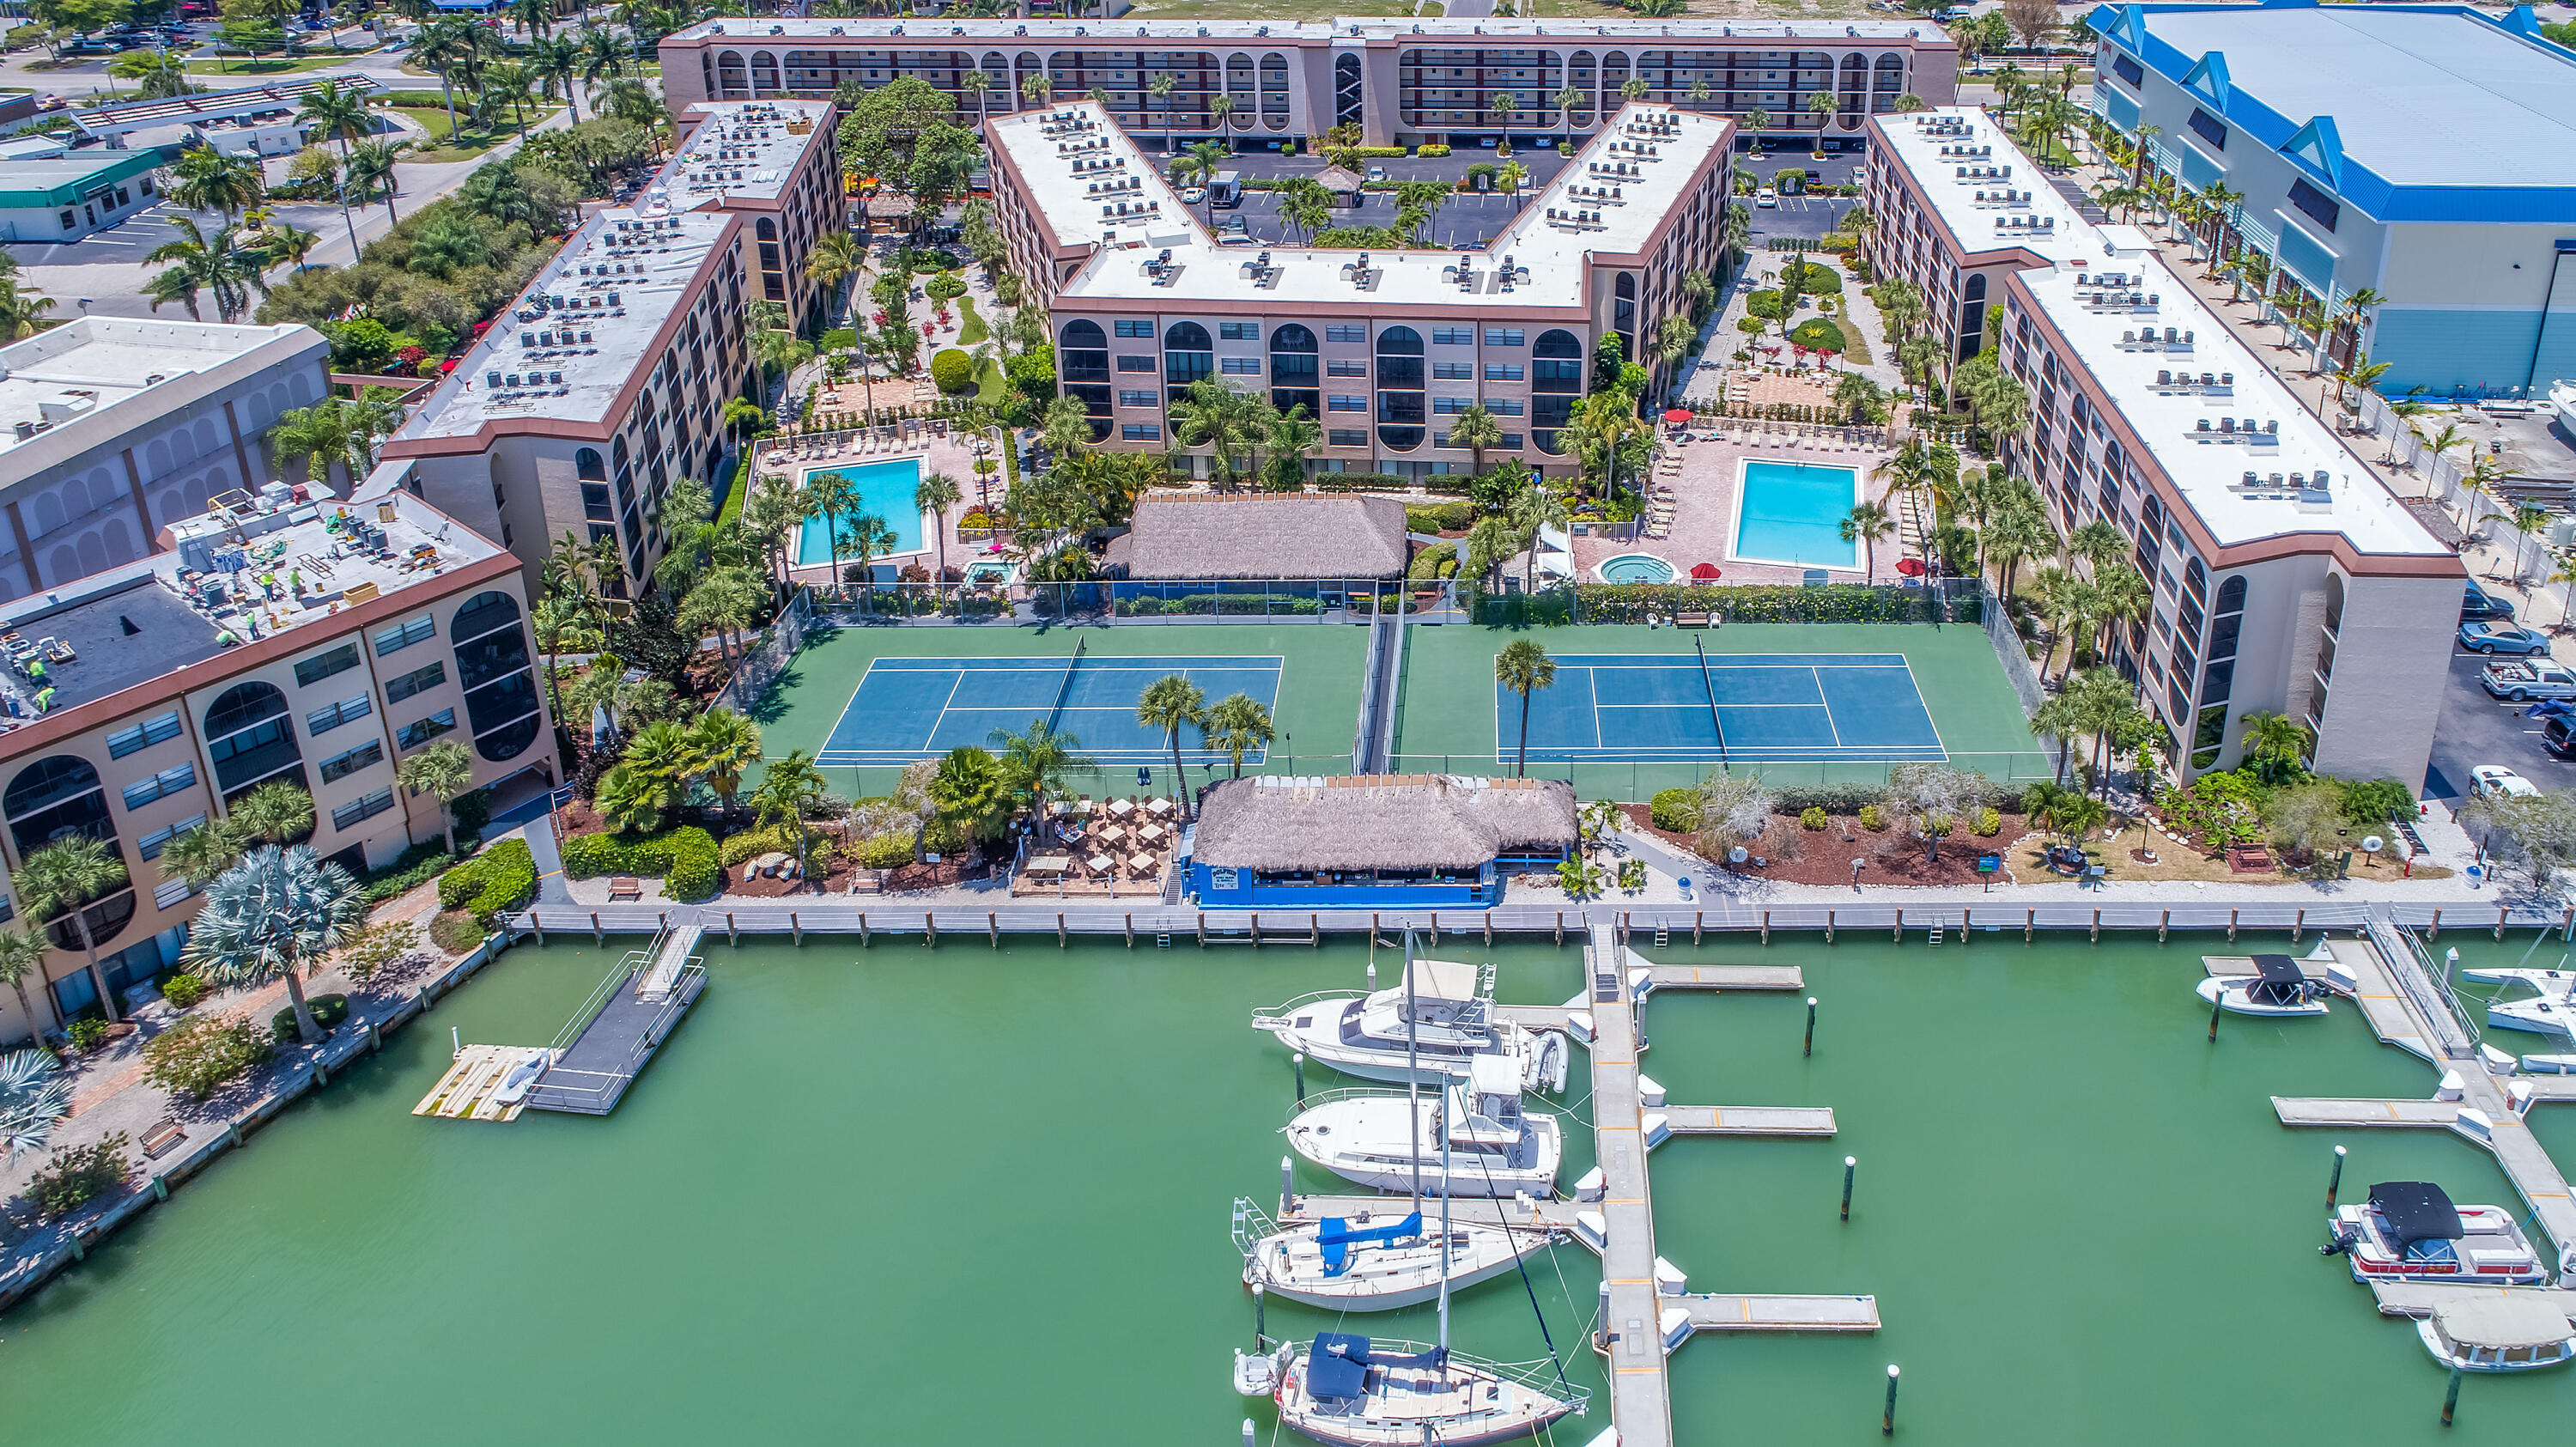 Lowest price waterfront bay view 2 bedroom weekly rental property on island.  Also, ideal for 2nd home at popular Anglers Cove.  Largely original finishes inside with upgraded flooring, you can freshen up with paint or more extensive renovations valuing the unit well above 500,000.  Currently rented through July 31 nearing the end of the annual lease, you have time to plan adding your personal touch to this opportunity.  And if you're still thinking about your best move, the current renter can continue month by month so you have some income.